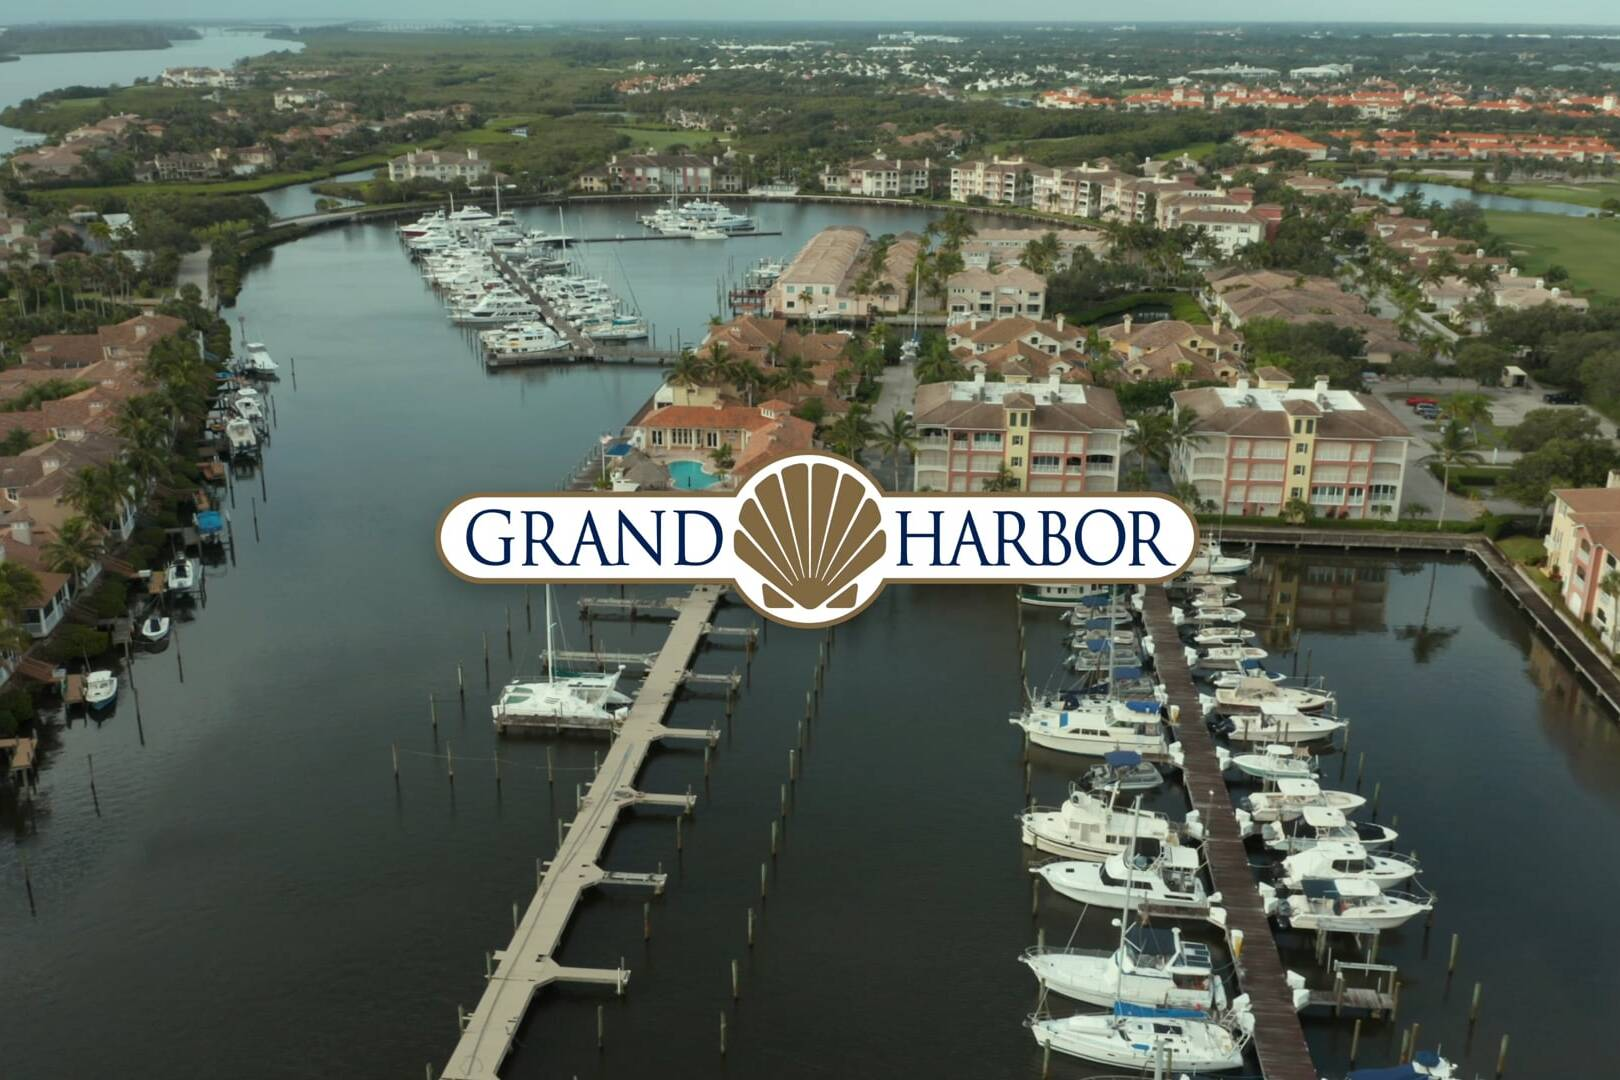 Ironside's professional video services created the club story for Grand Harbor